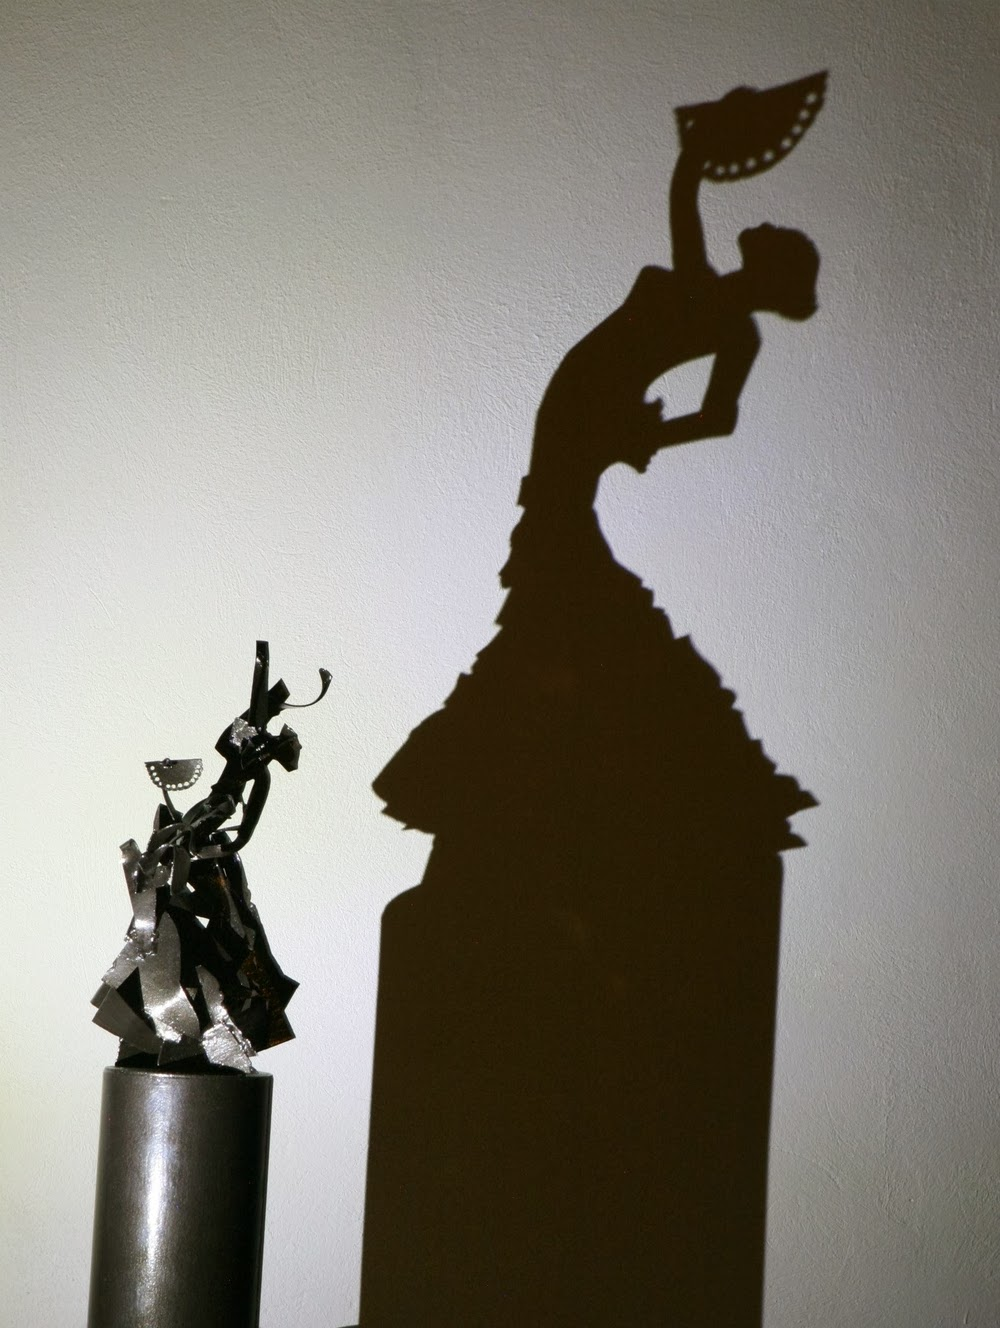 10-Flamenco-Dancer-Teodosio-Sectio-Aurea-Shadow-Art-www-designstack-co